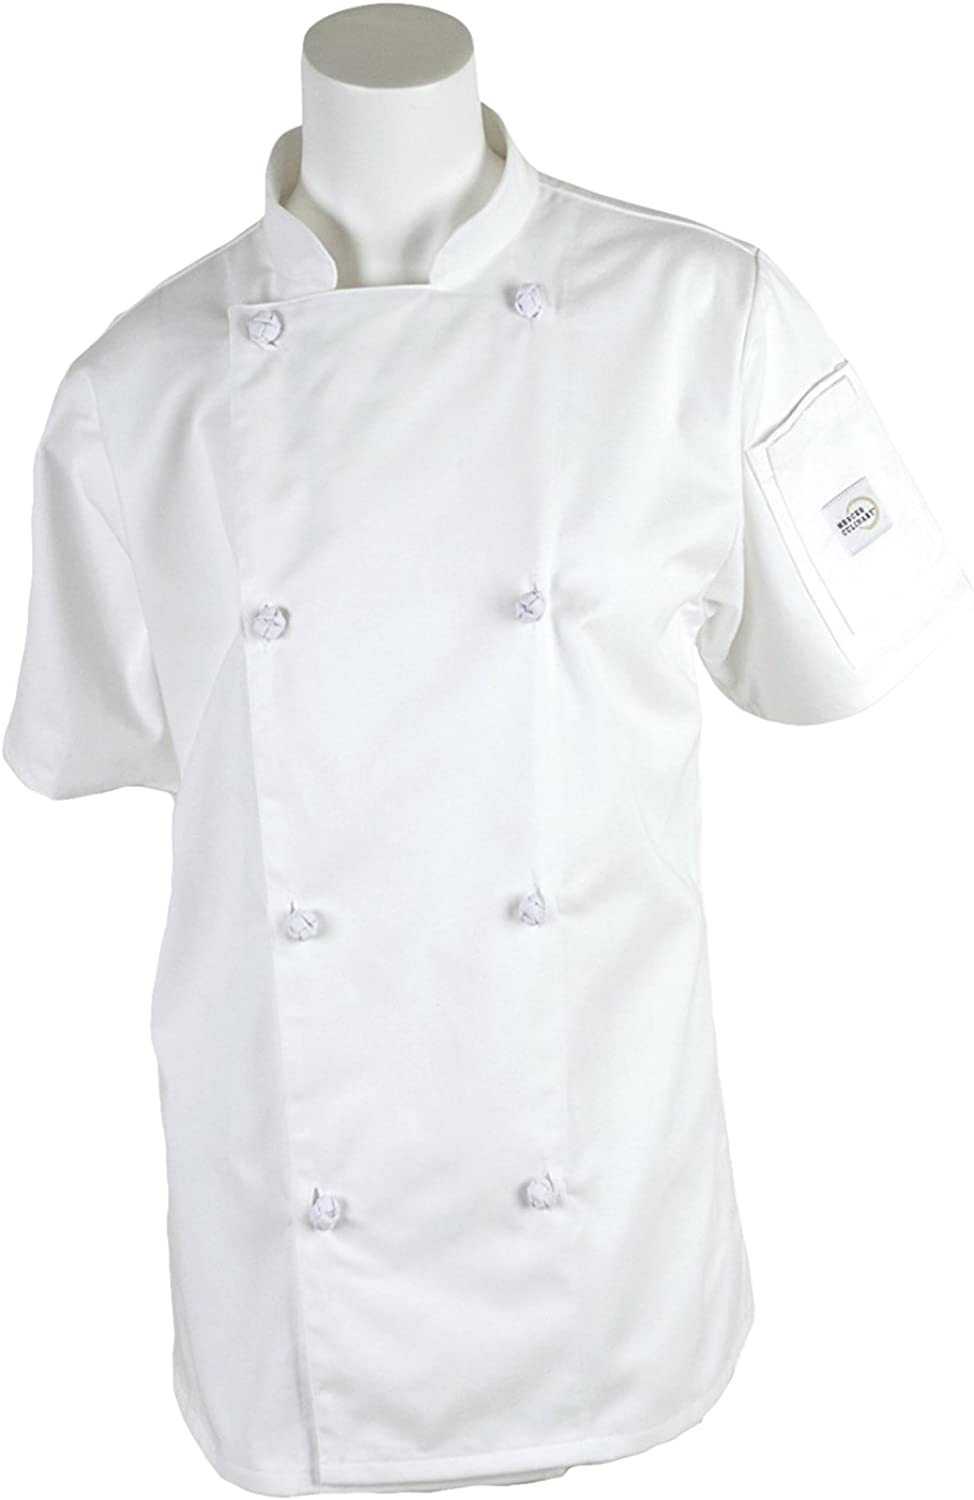 Mercer Culinary M61042WHM Genesis Women's Short Sleeve Chef Jacket with Cloth Knot Buttons, Medium, White